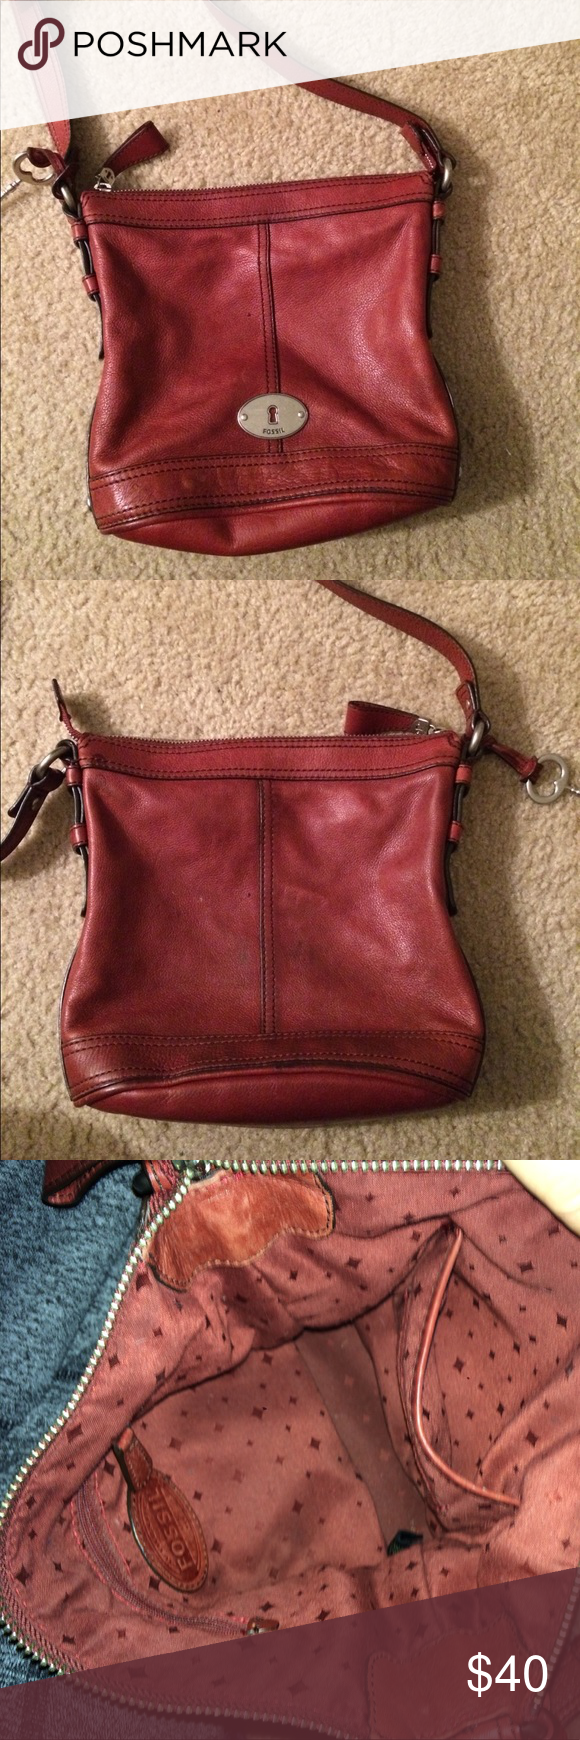 Red/ deep red fossil cross body bucket purse Authentic Fossil. Red cross body, great condition. Leather looks new. Fossil Bags Crossbody Bags